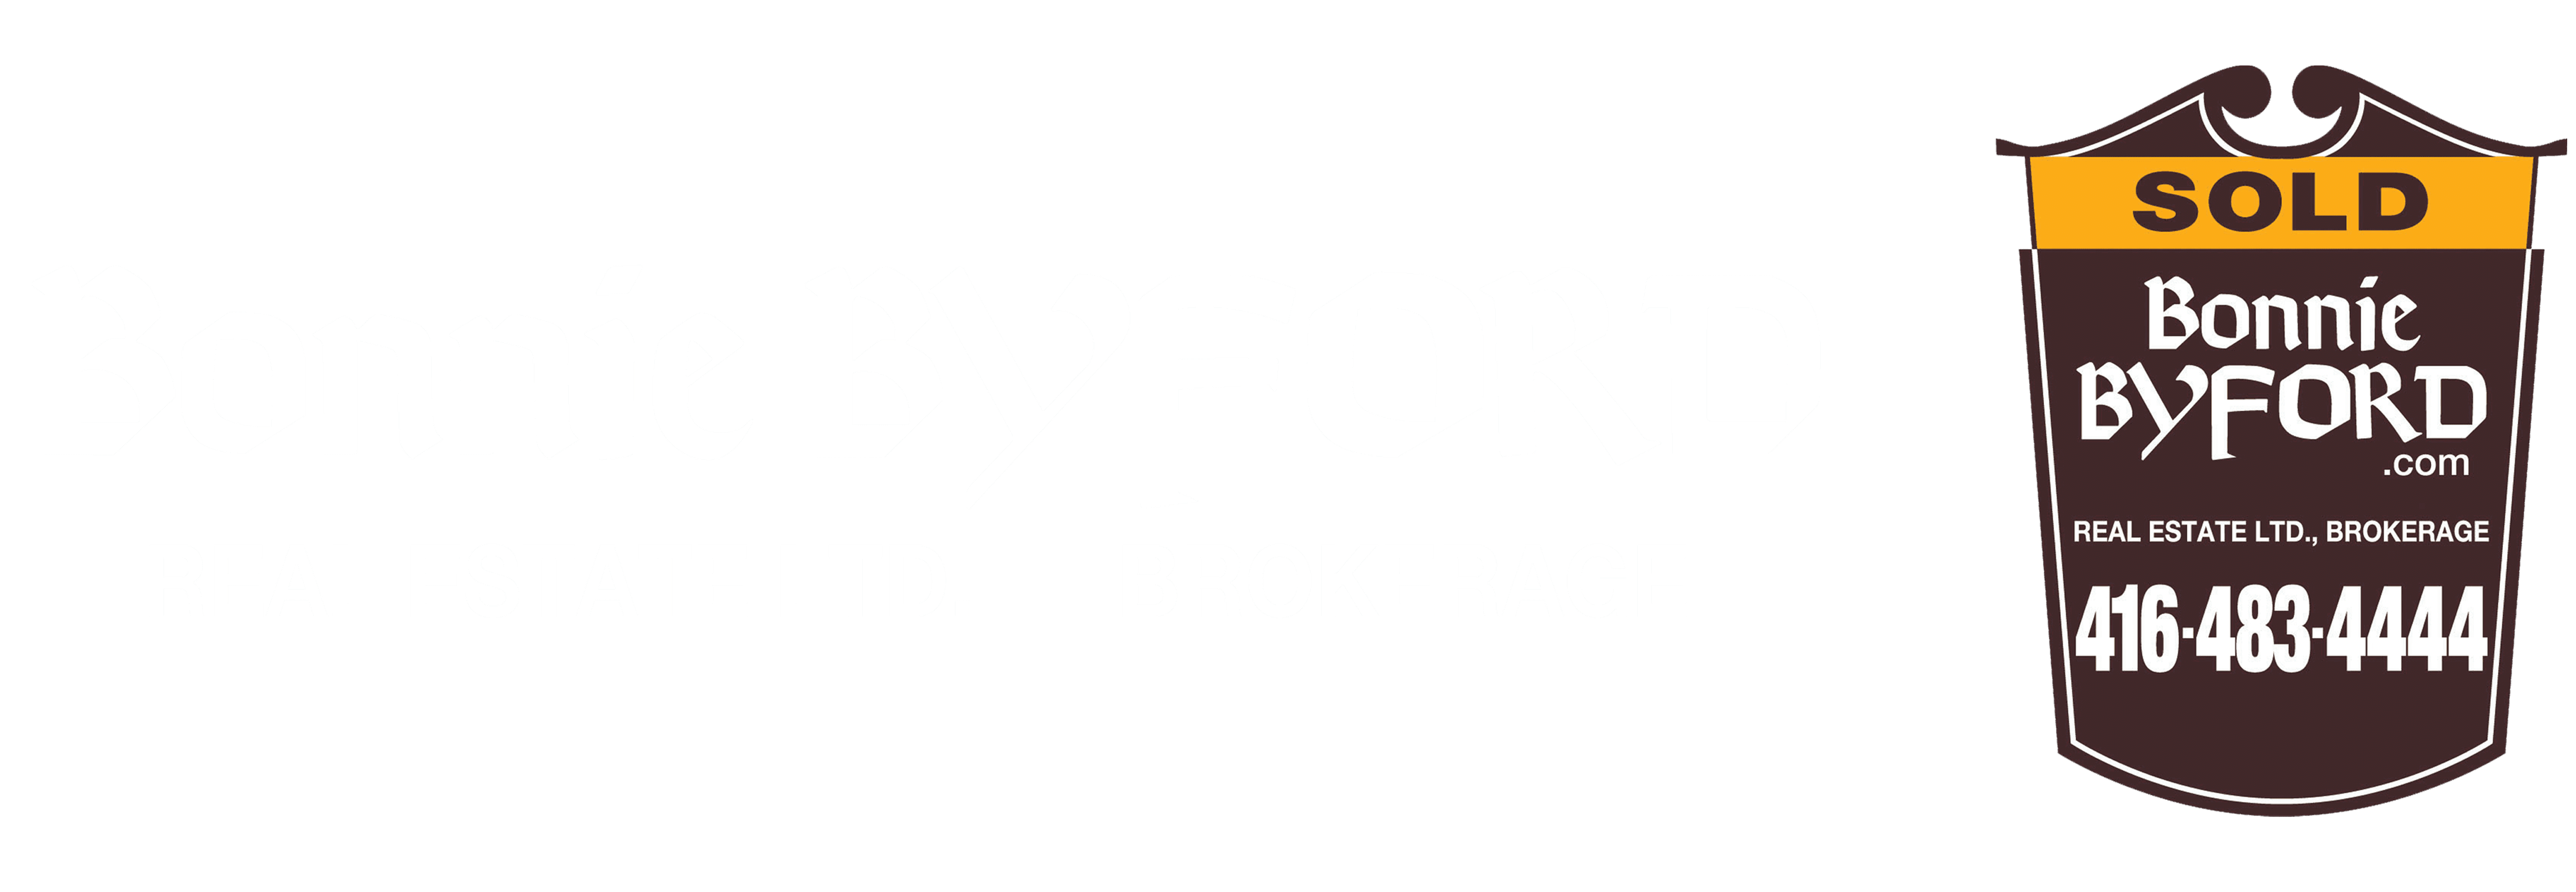 Bonnie Byford Real Estate Ltd. Brokerage